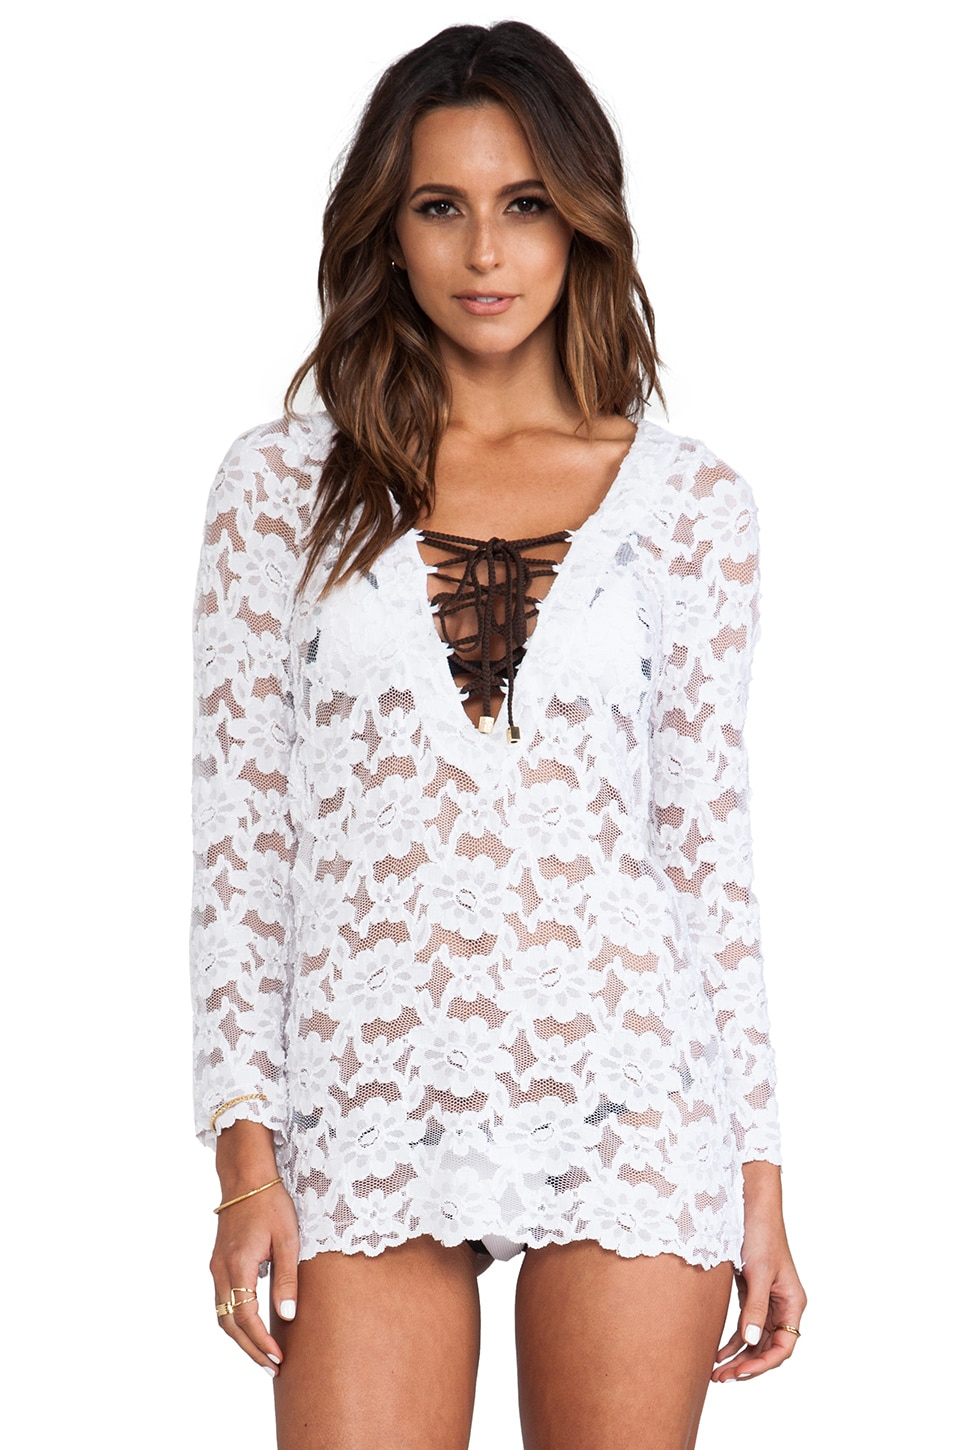 Beach Bunny Lady Lace Marilyn Cover-Up in White